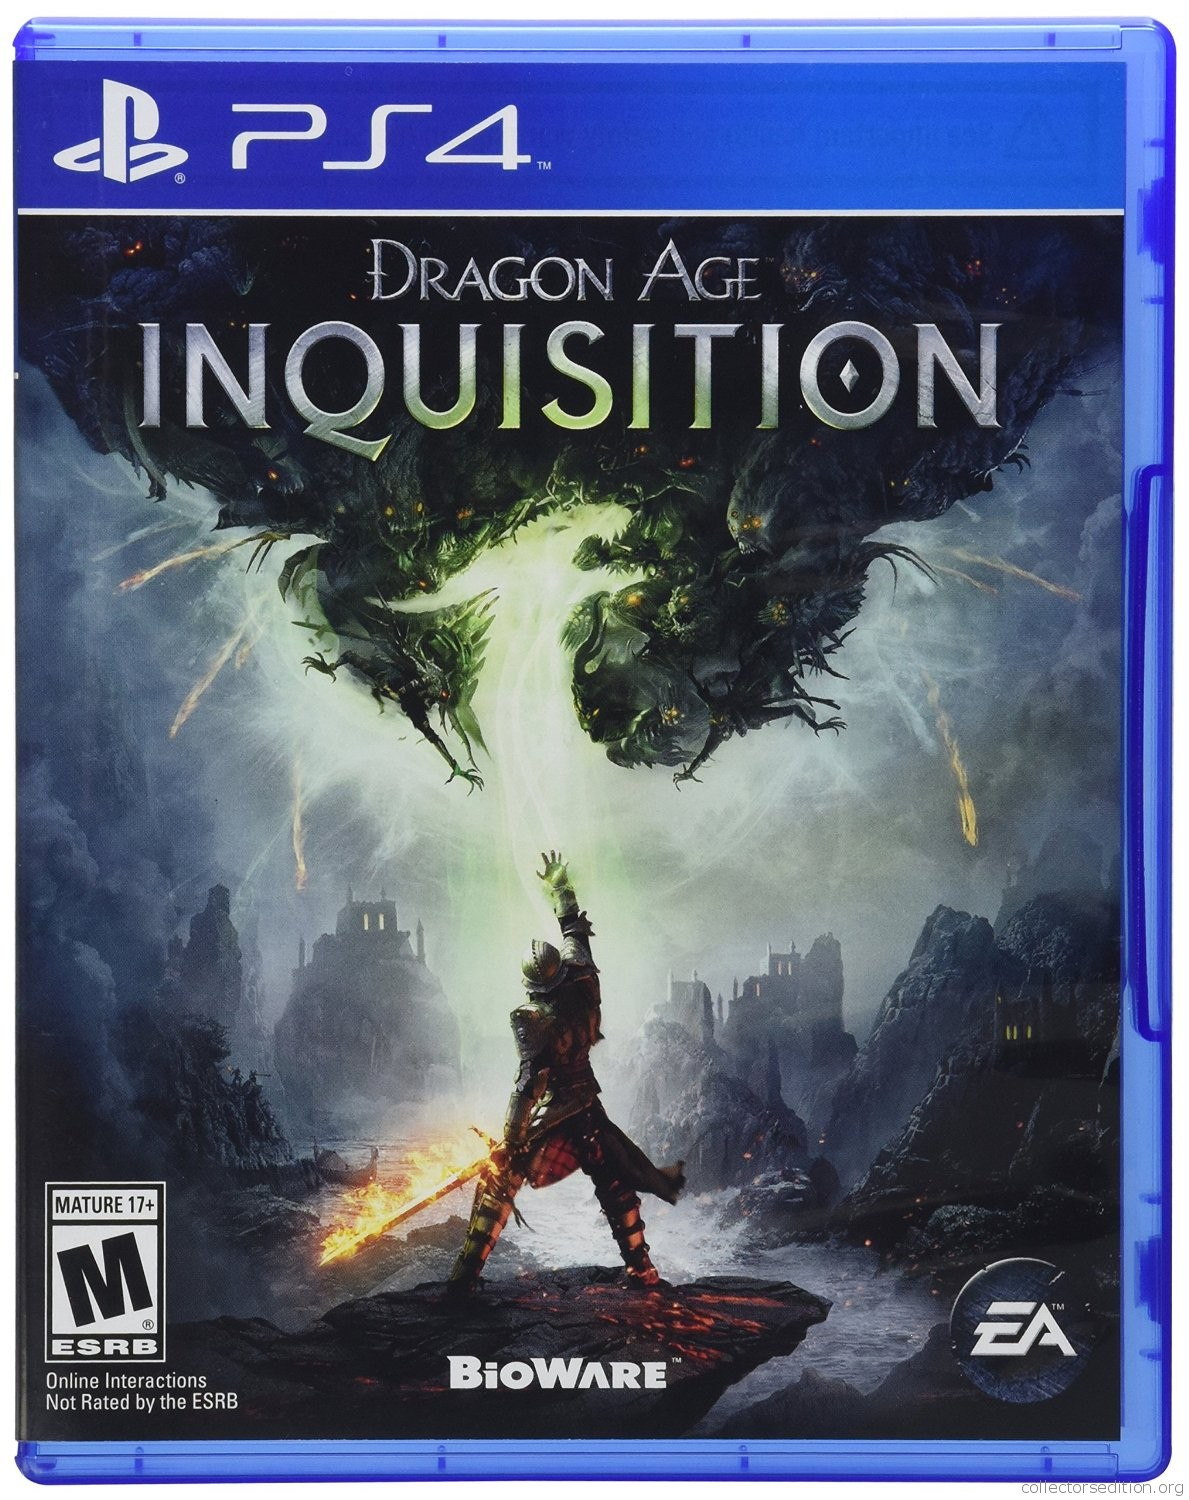 Dragon Age: Inquisition Review - GameSpot